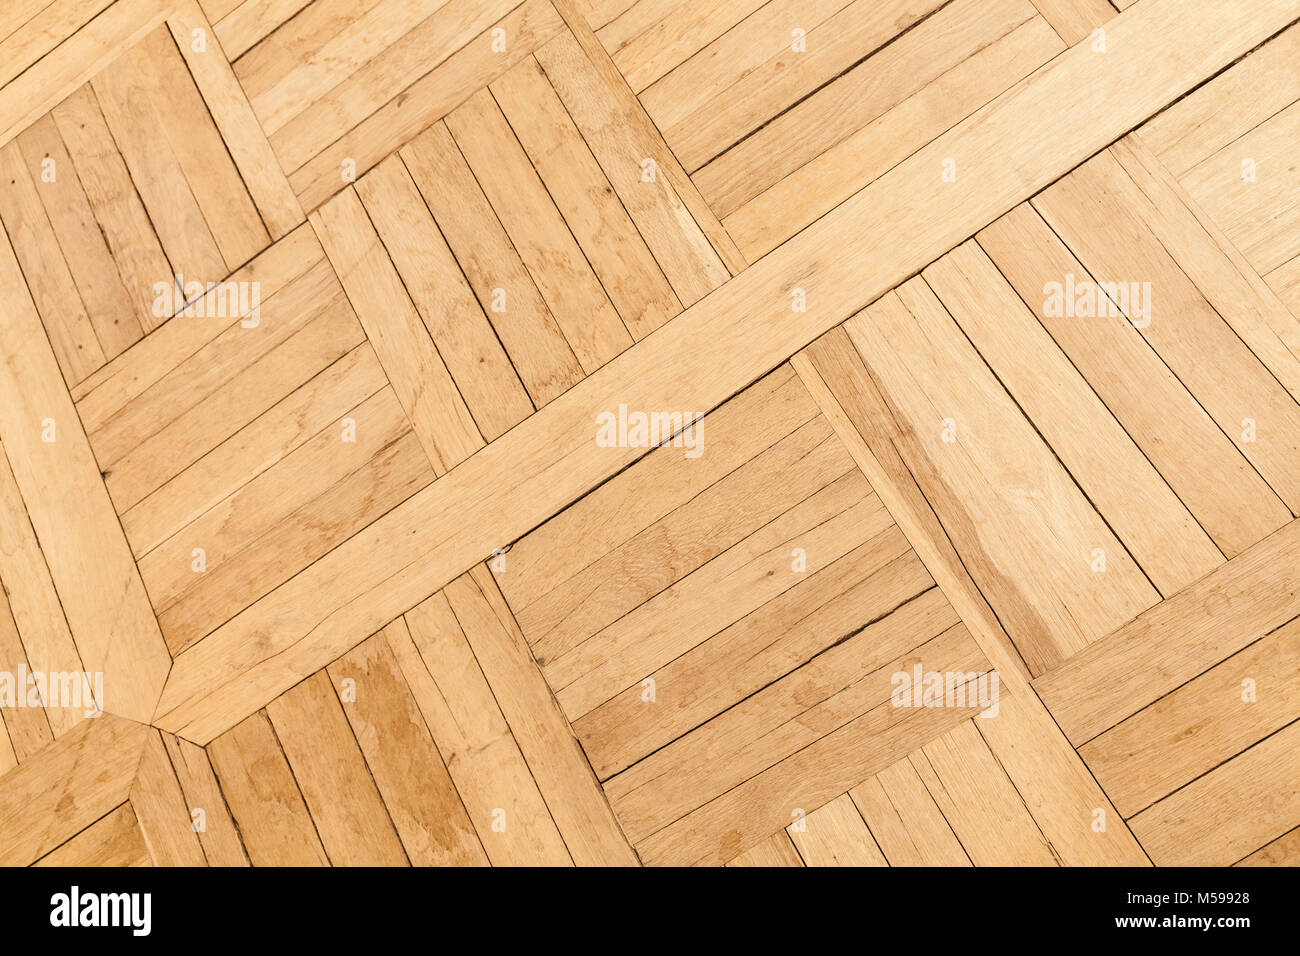 Parquet Made Of Oak Wood Planks With Square Geometric Pattern Stock